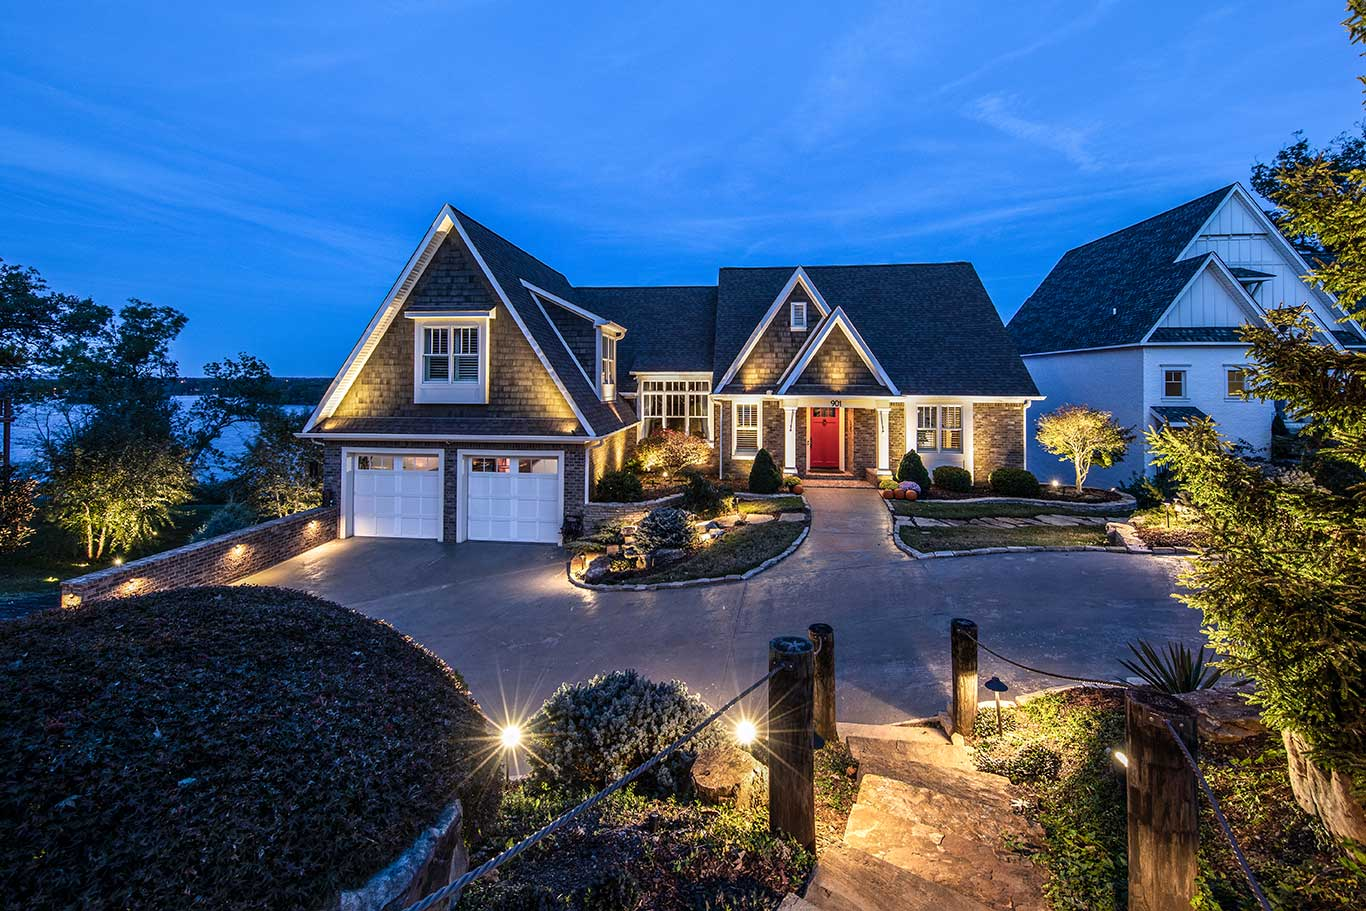 house with outdoor lighting and landscape lighting